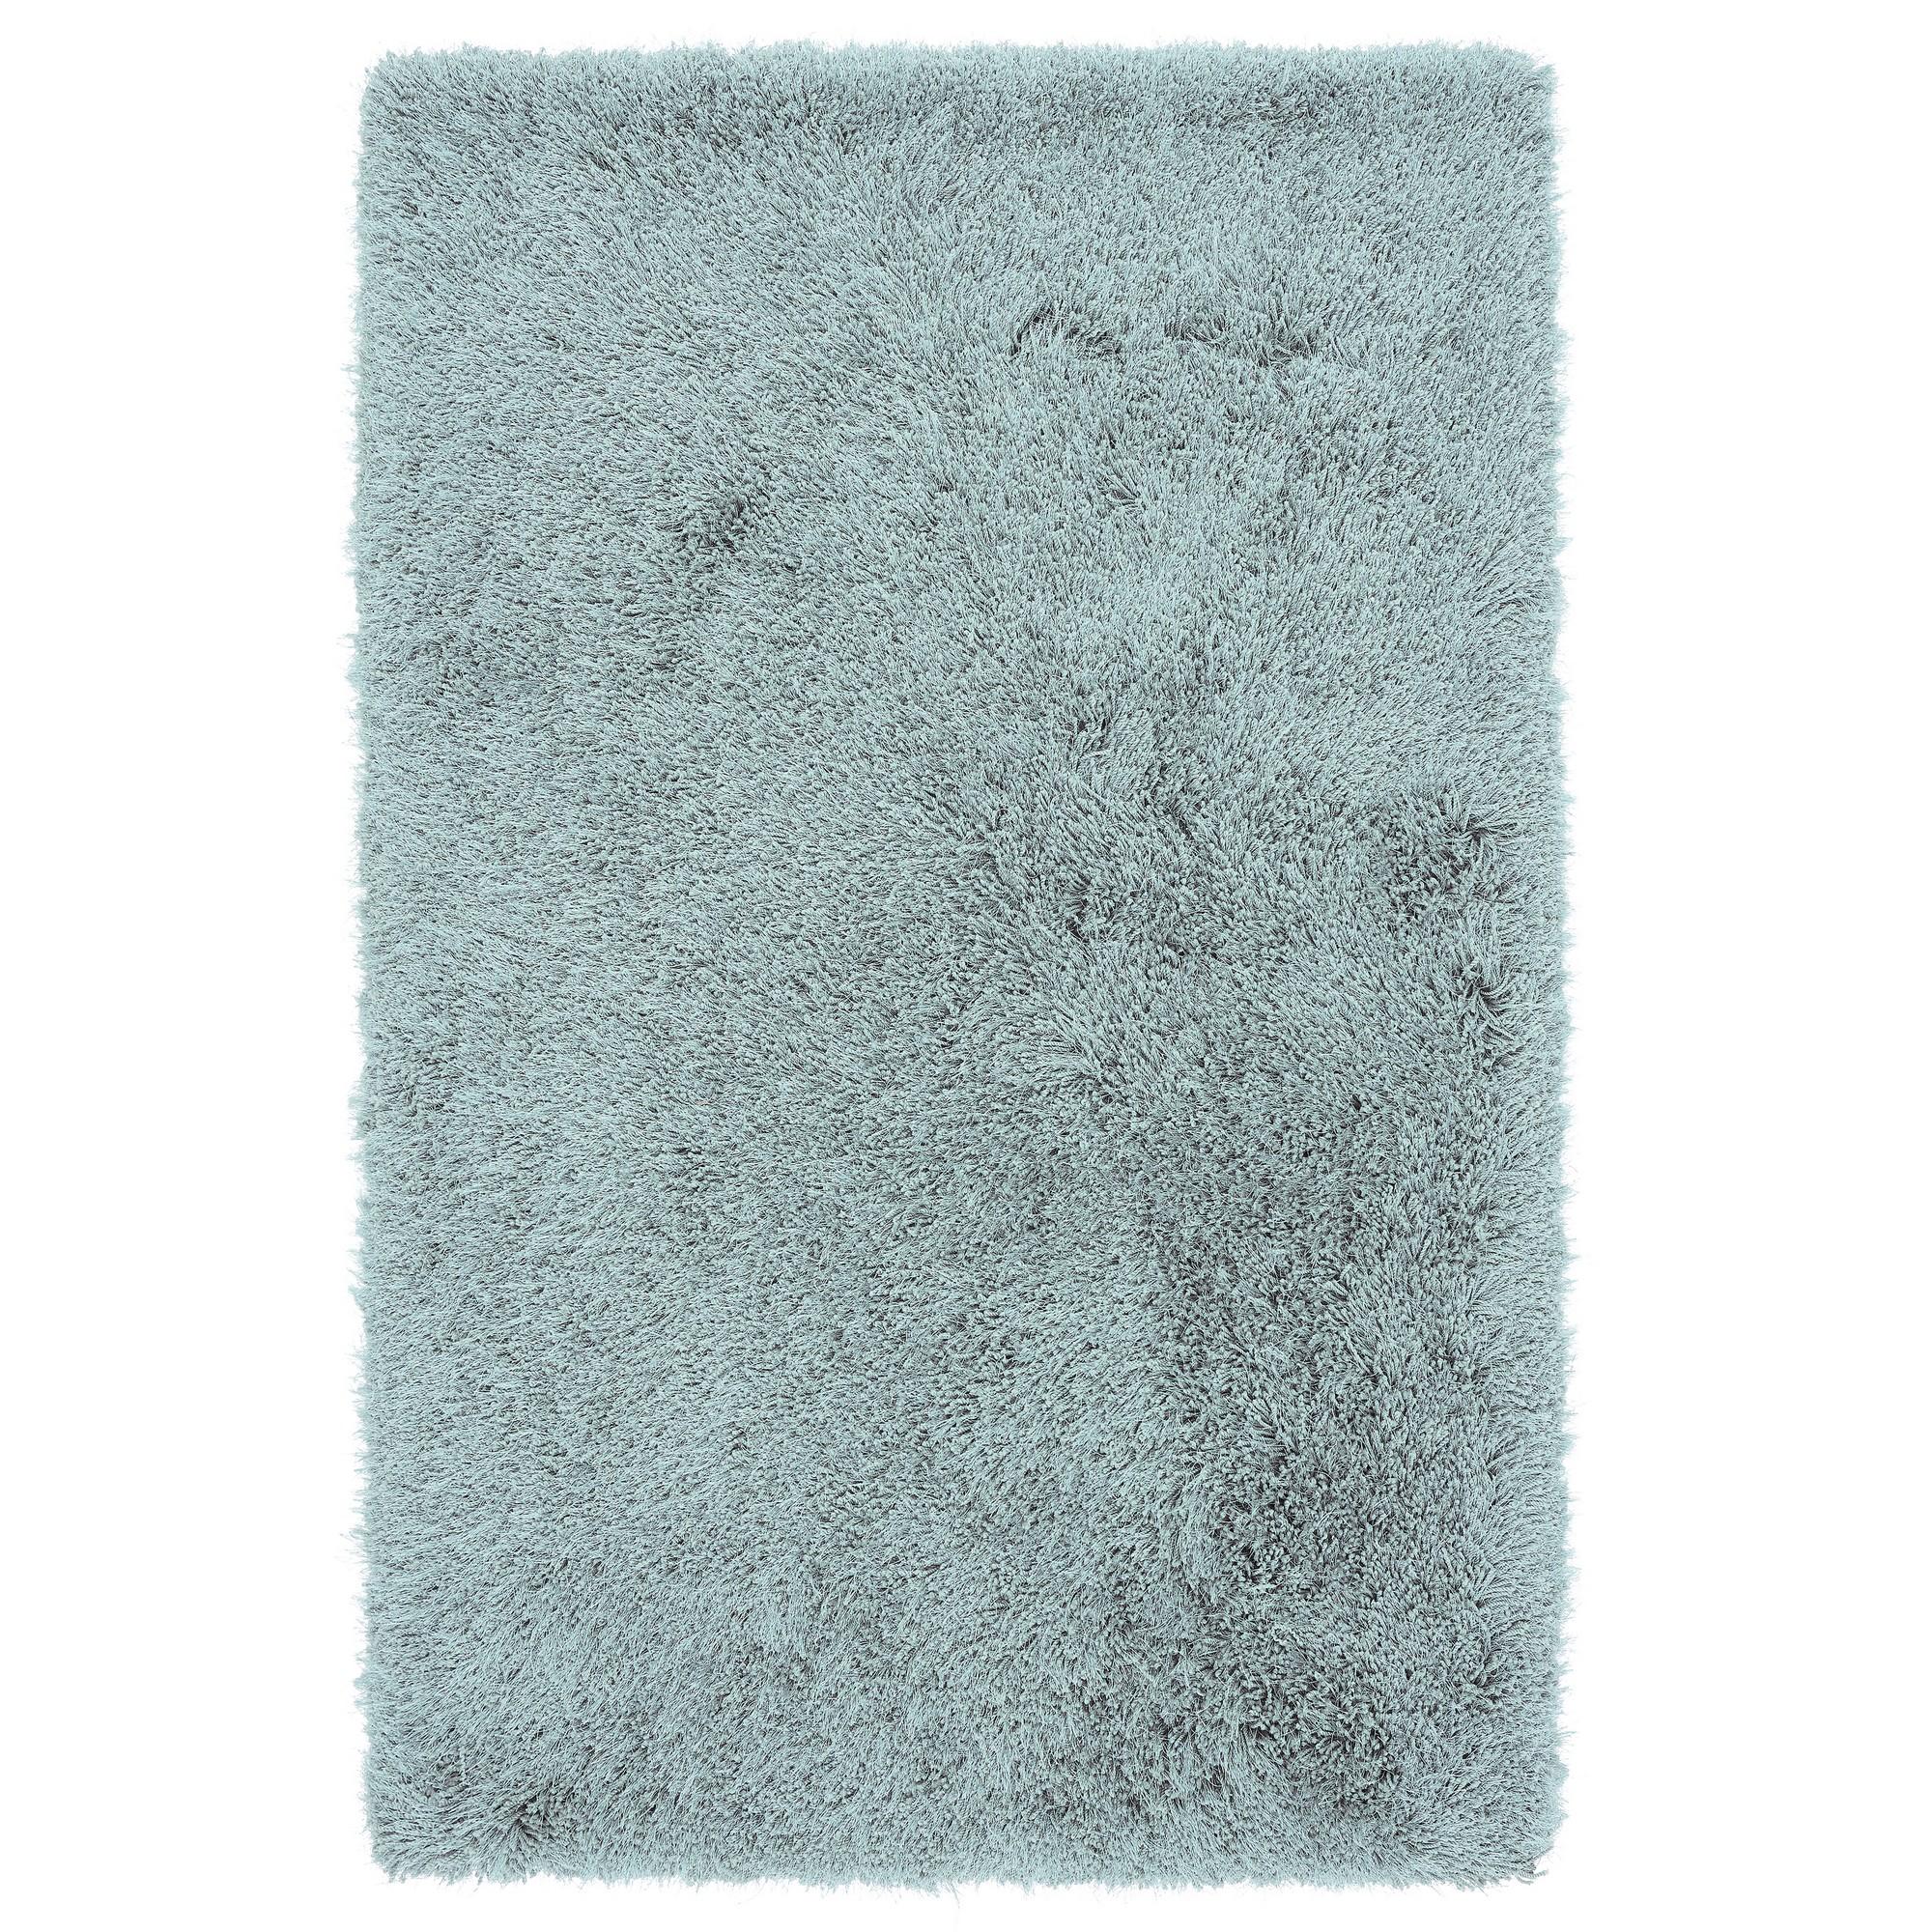 cascade shaggy rugs in duck egg blue free uk delivery. Black Bedroom Furniture Sets. Home Design Ideas